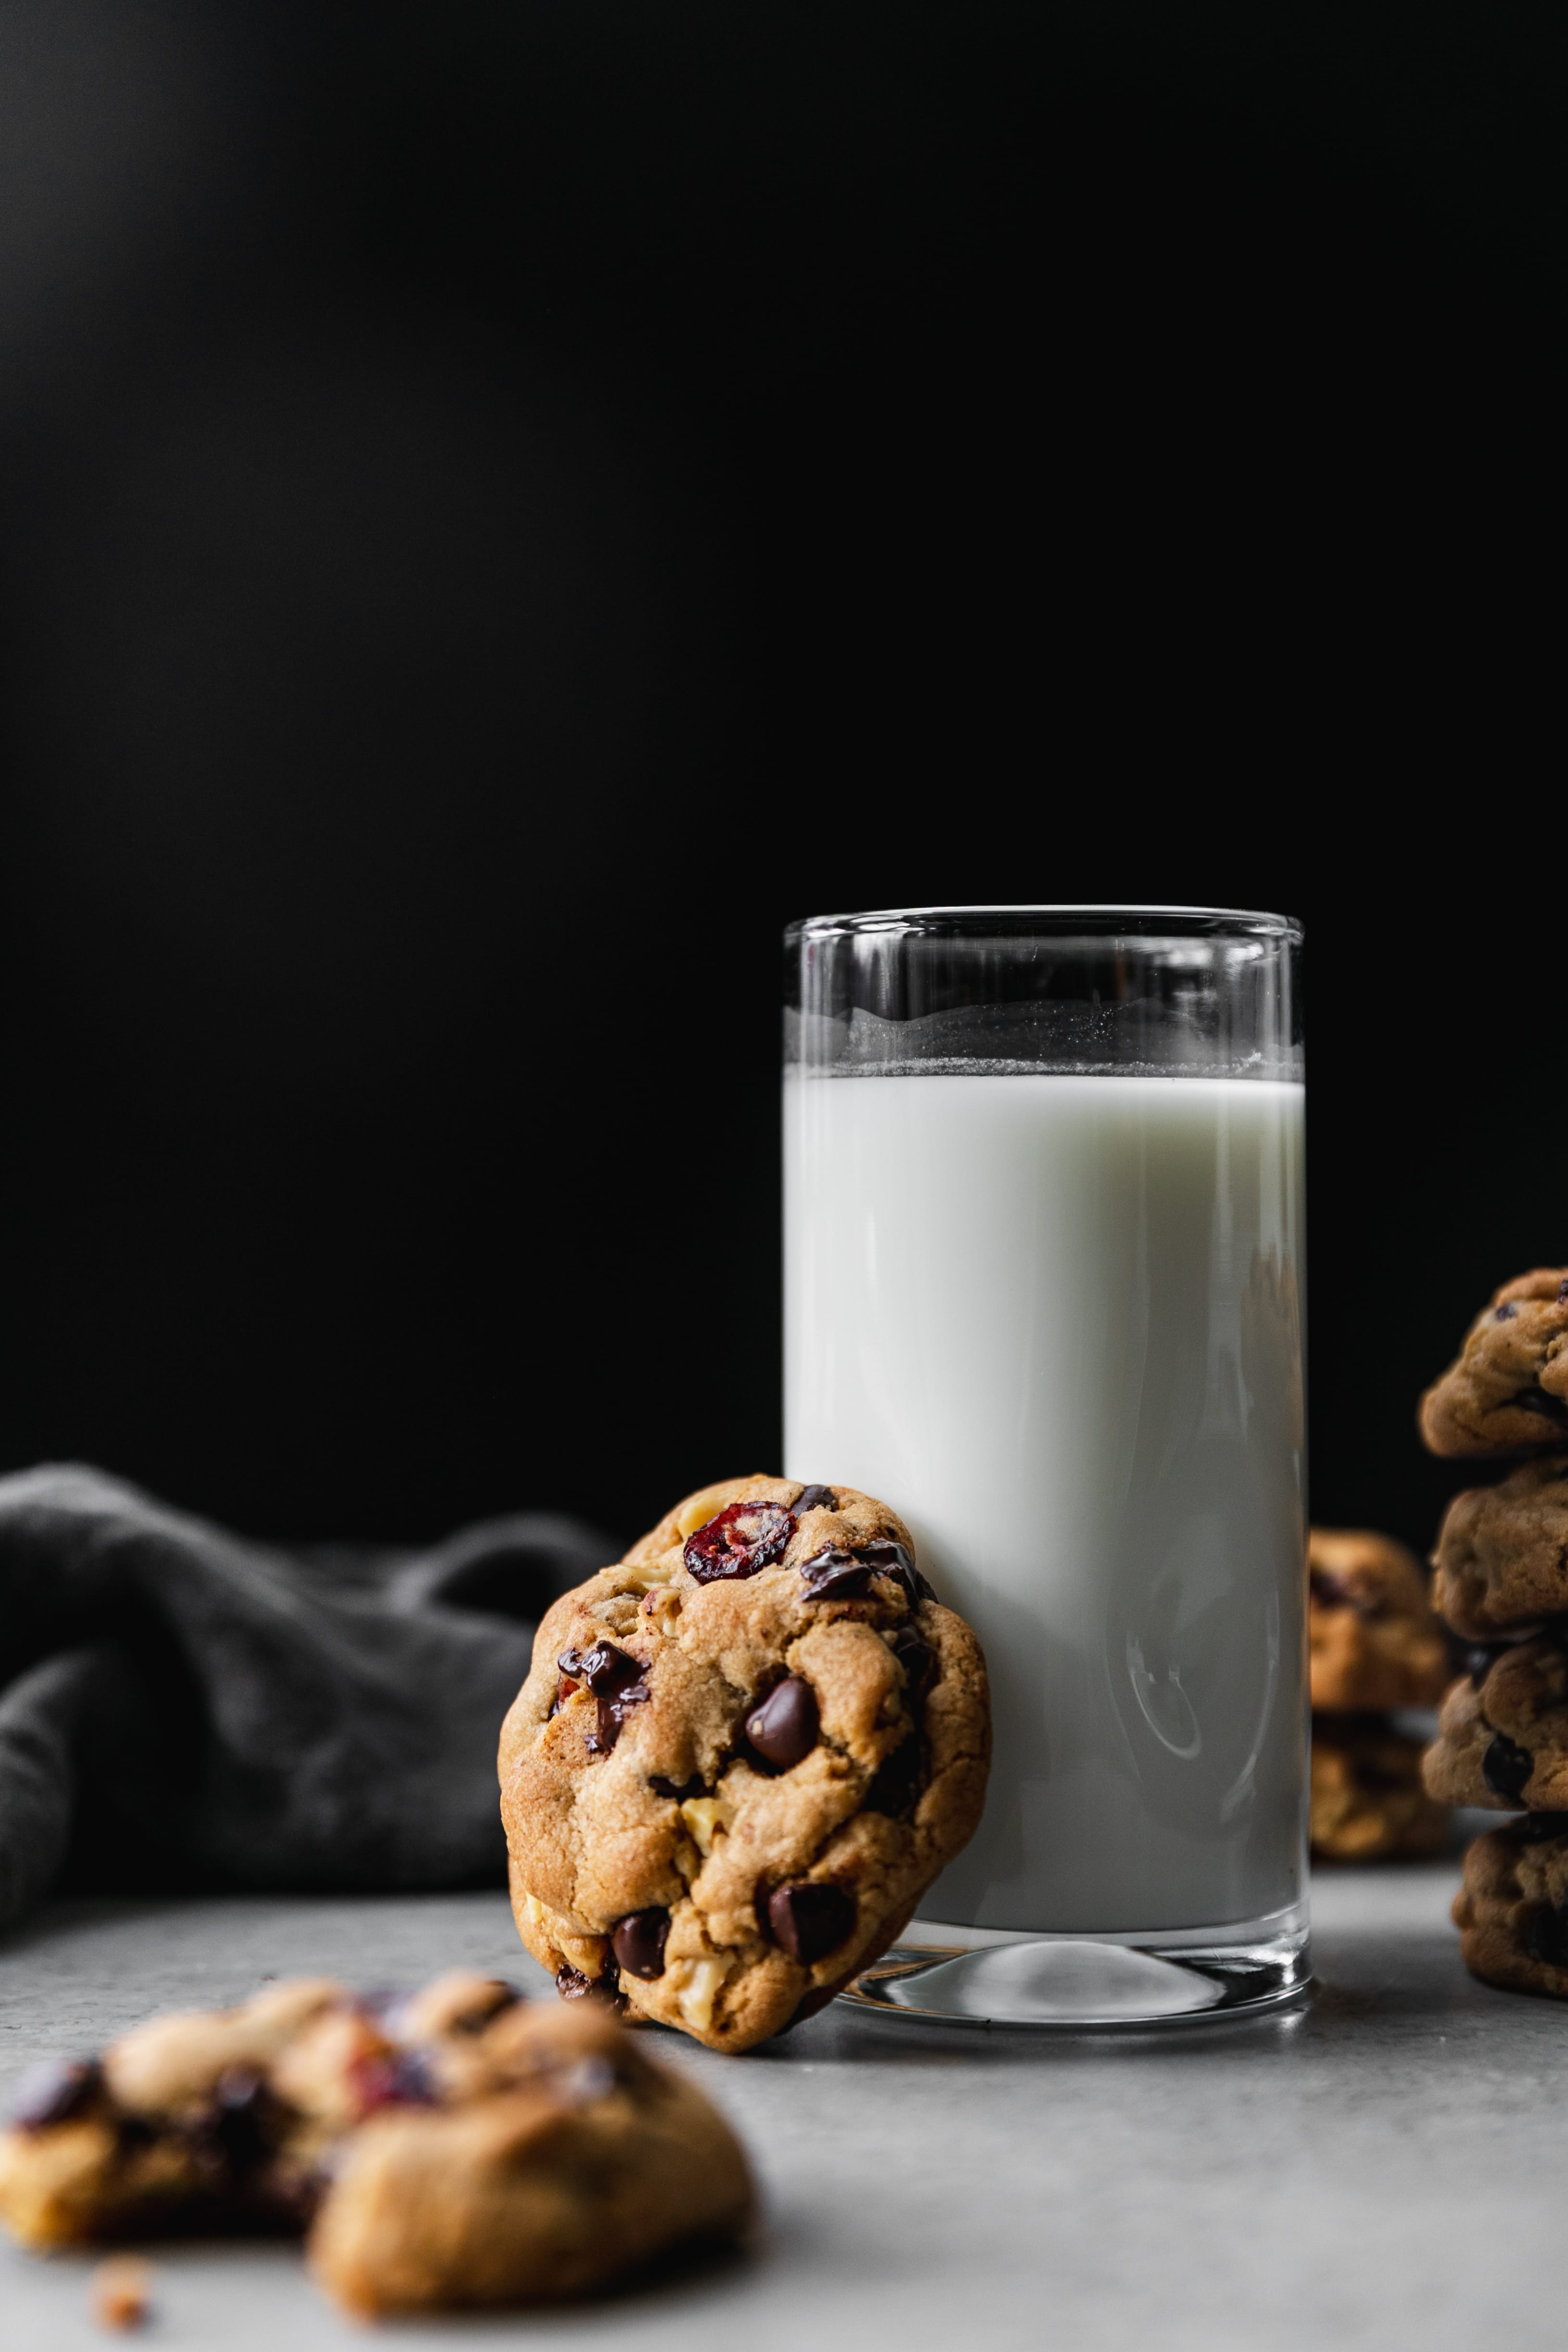 Shot of a glass of milk against a black background with a dark chocolate cranberry walnut cookie resting up against it and a stack of cookies next to it